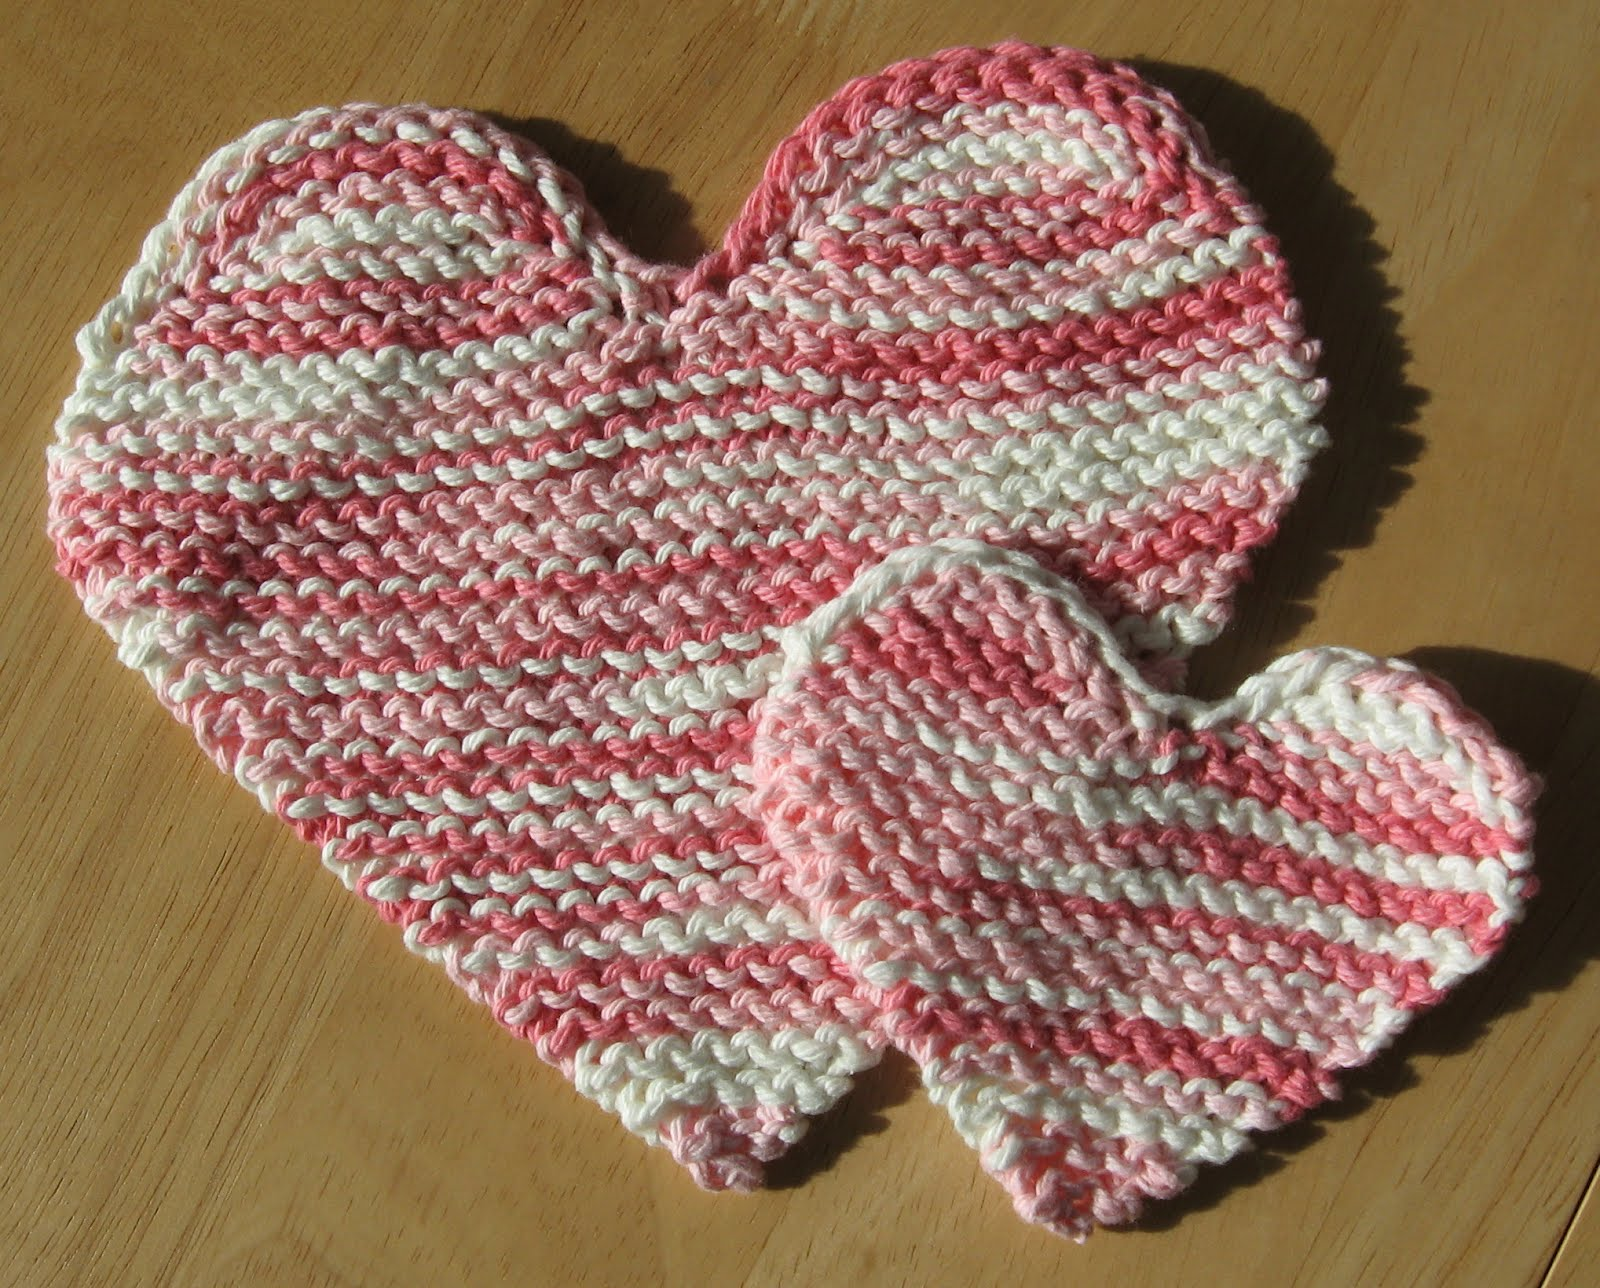 Simple Knits: Convo Hearts to knit